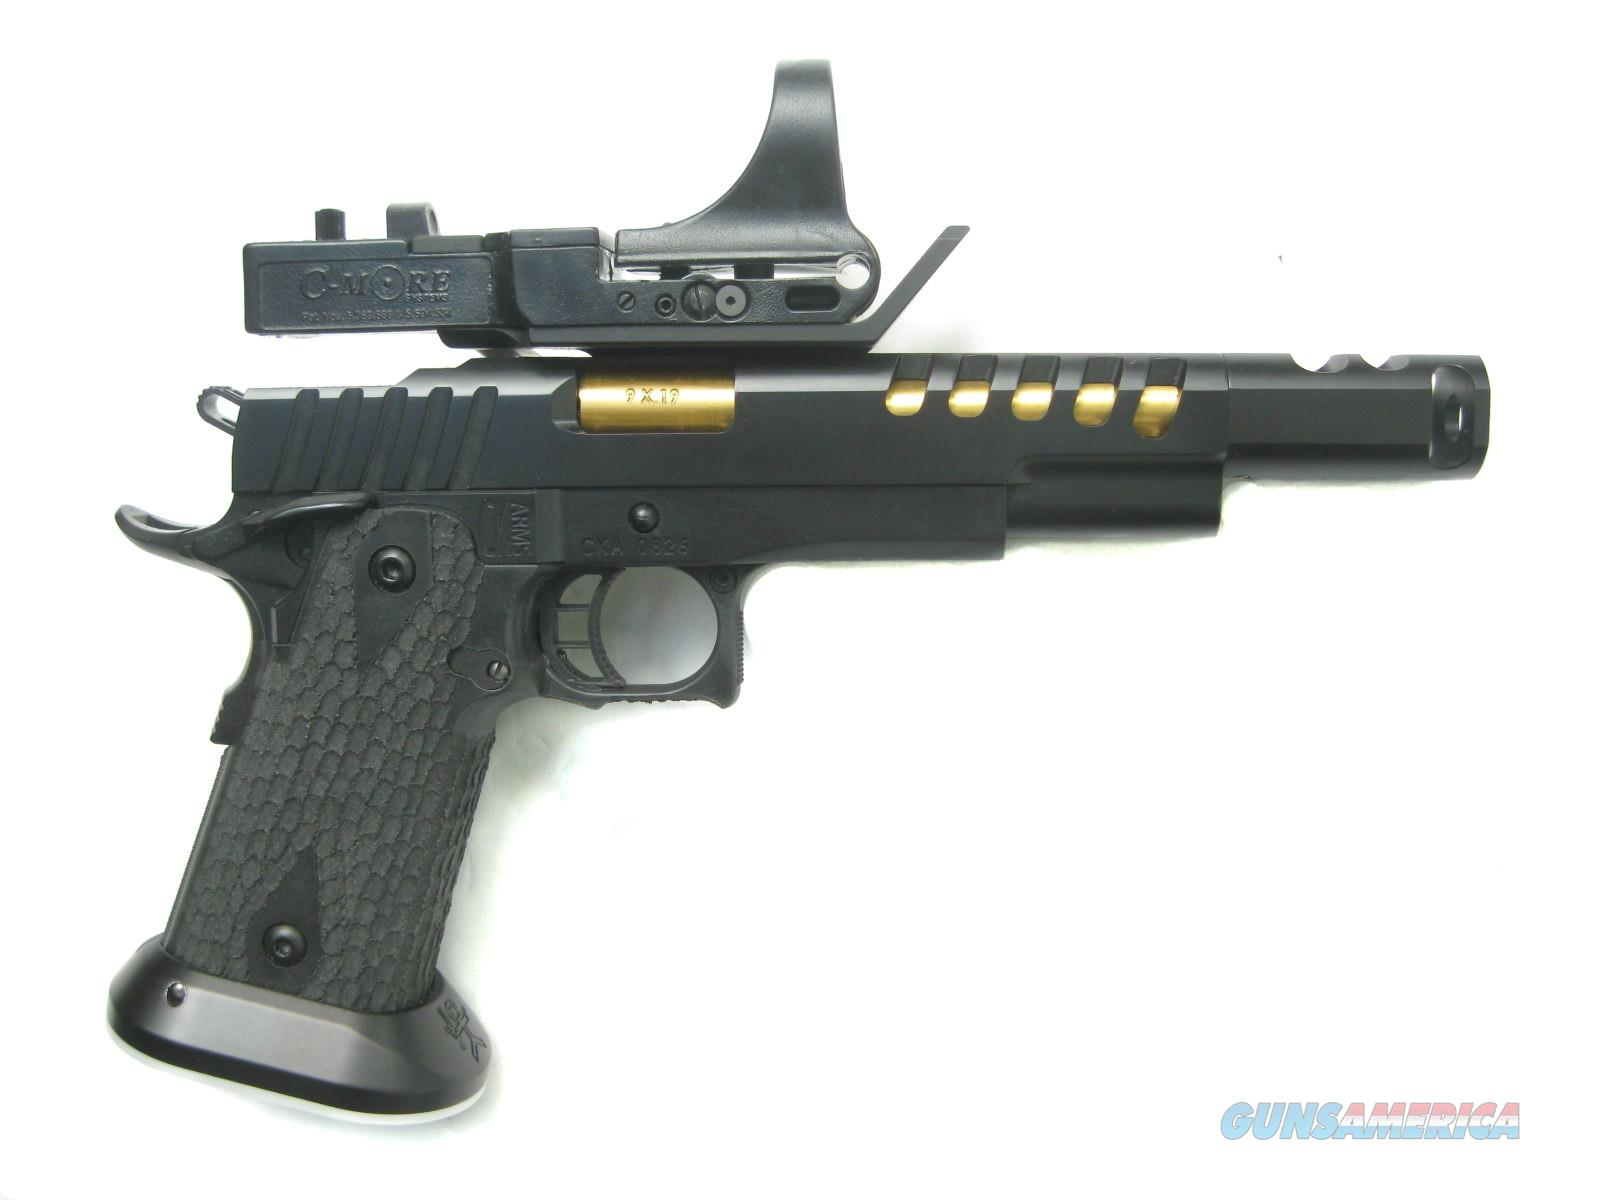 CK Arms Custom Thunder Series Open 9mm Black PVD TiCN Gold Barrel C-More *NEW*  Guns > Pistols > 1911 Pistol Copies (non-Colt)